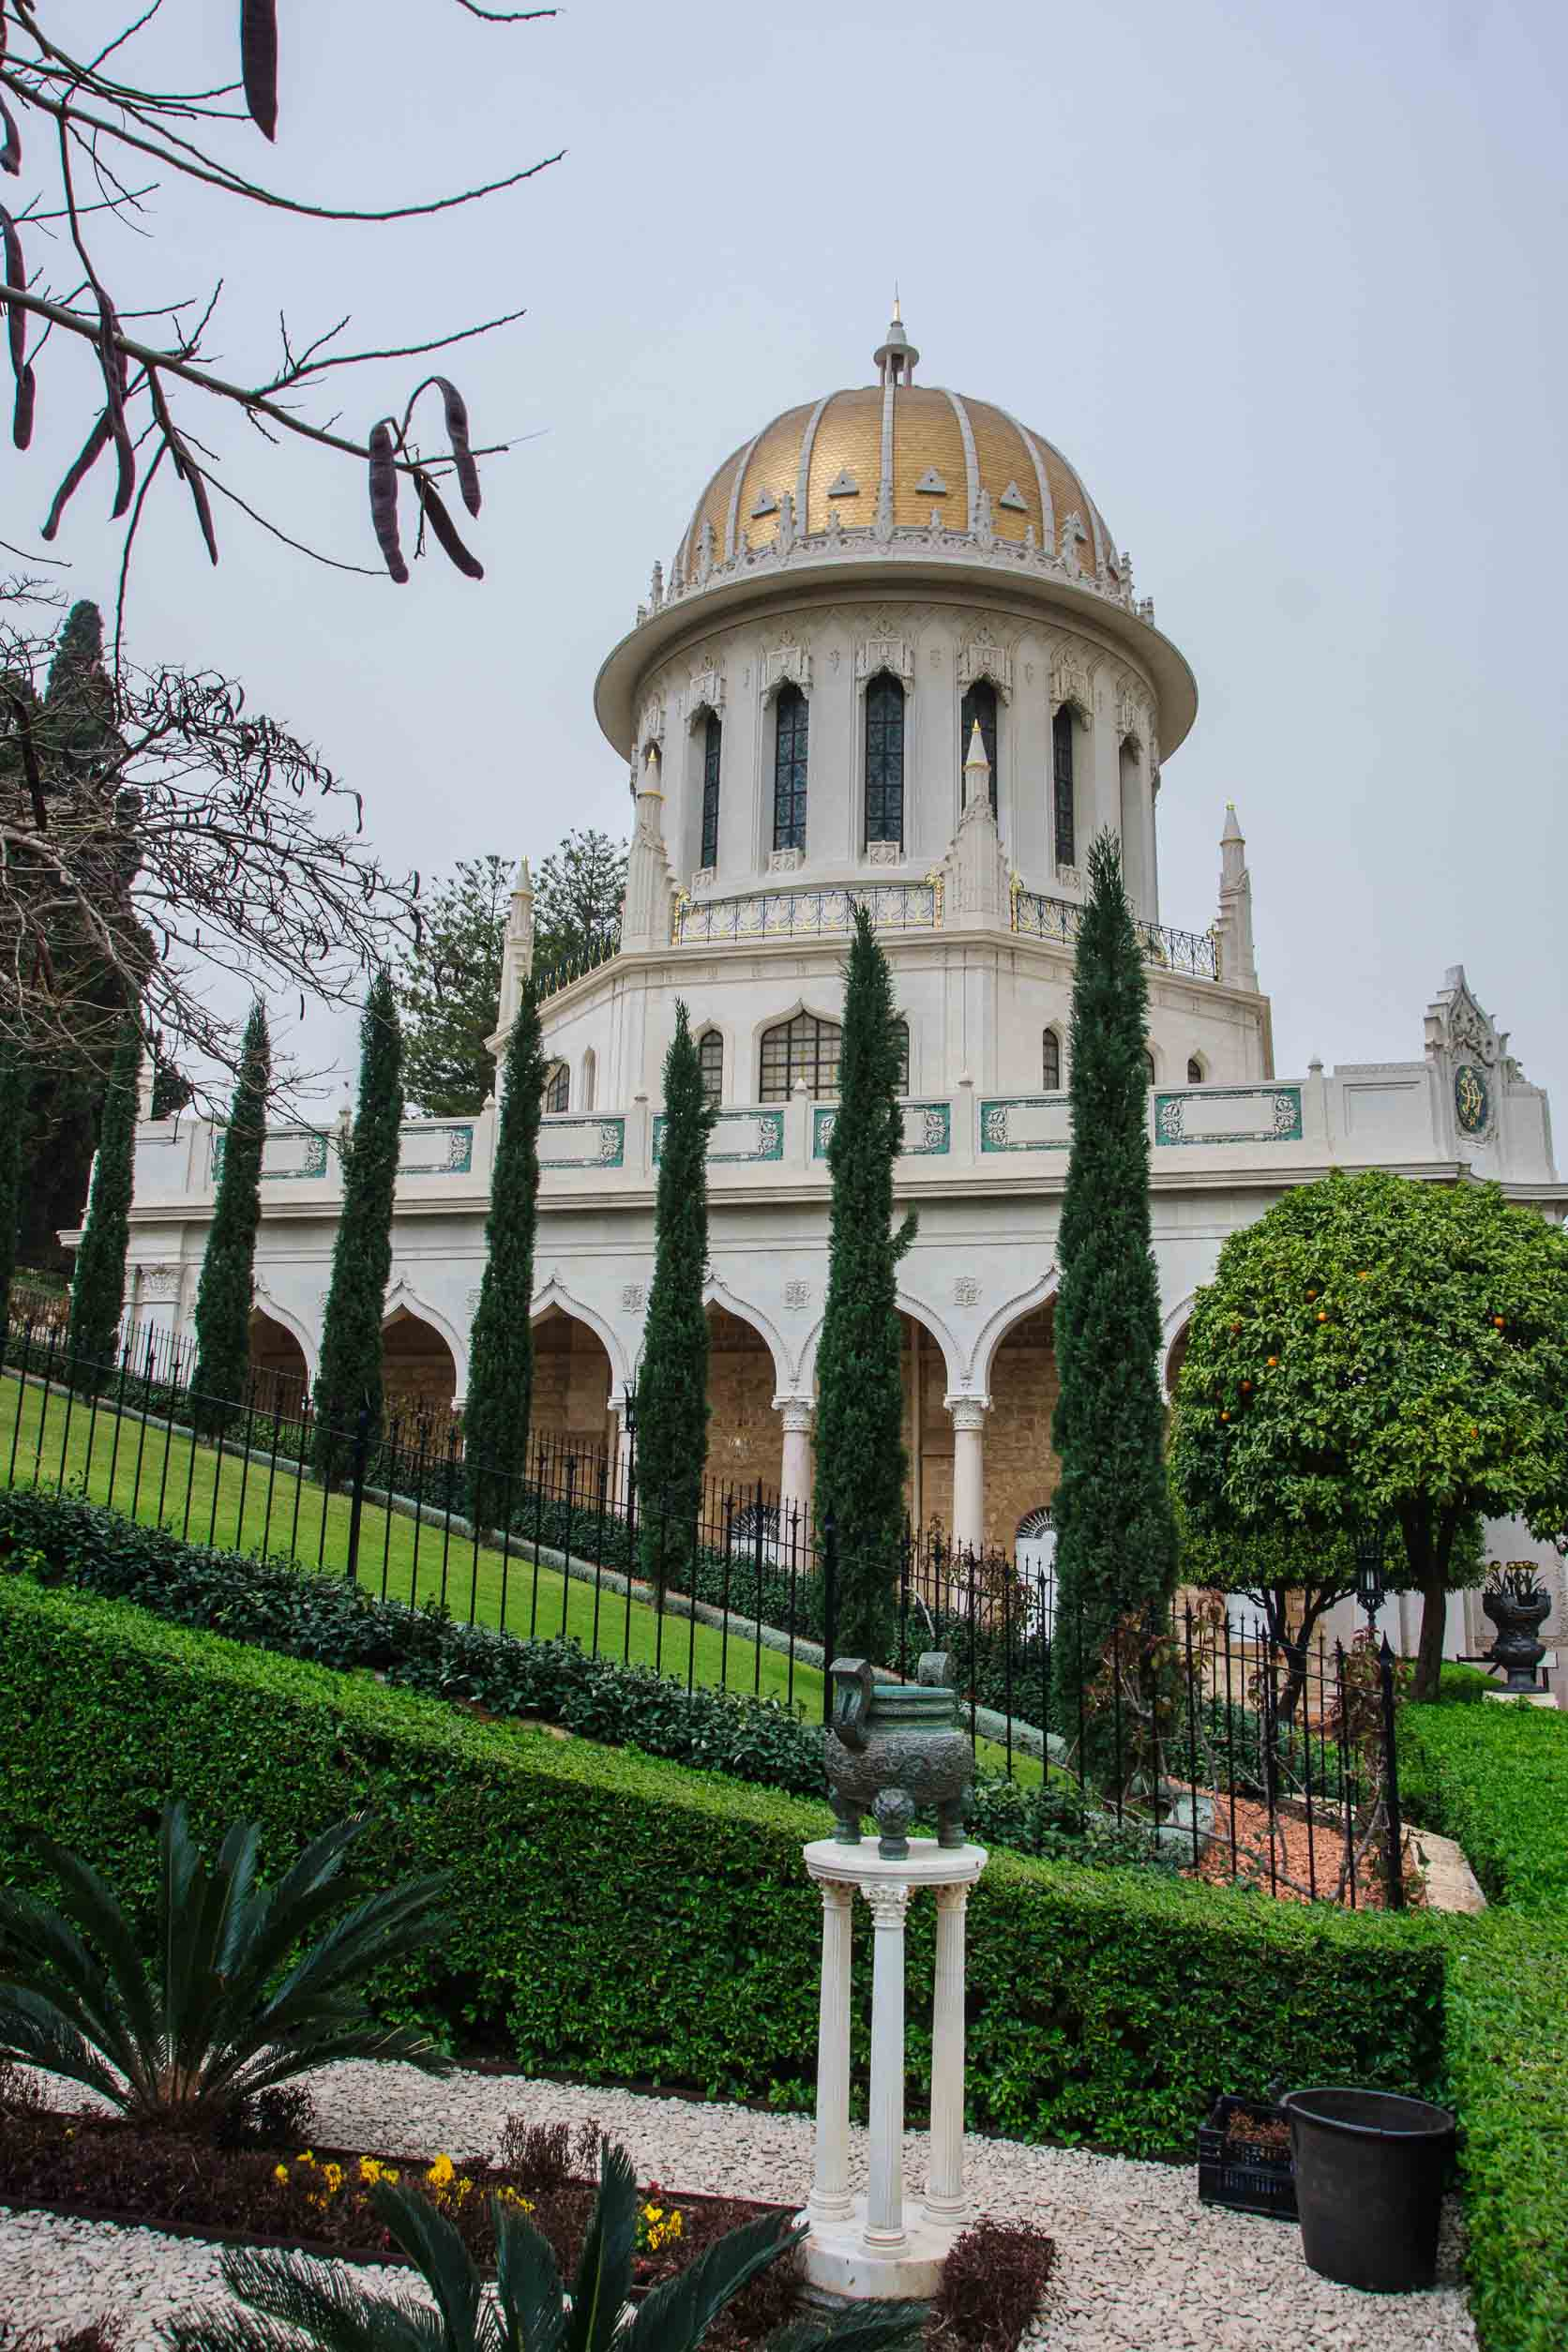 bahai-temple-illinois-usa